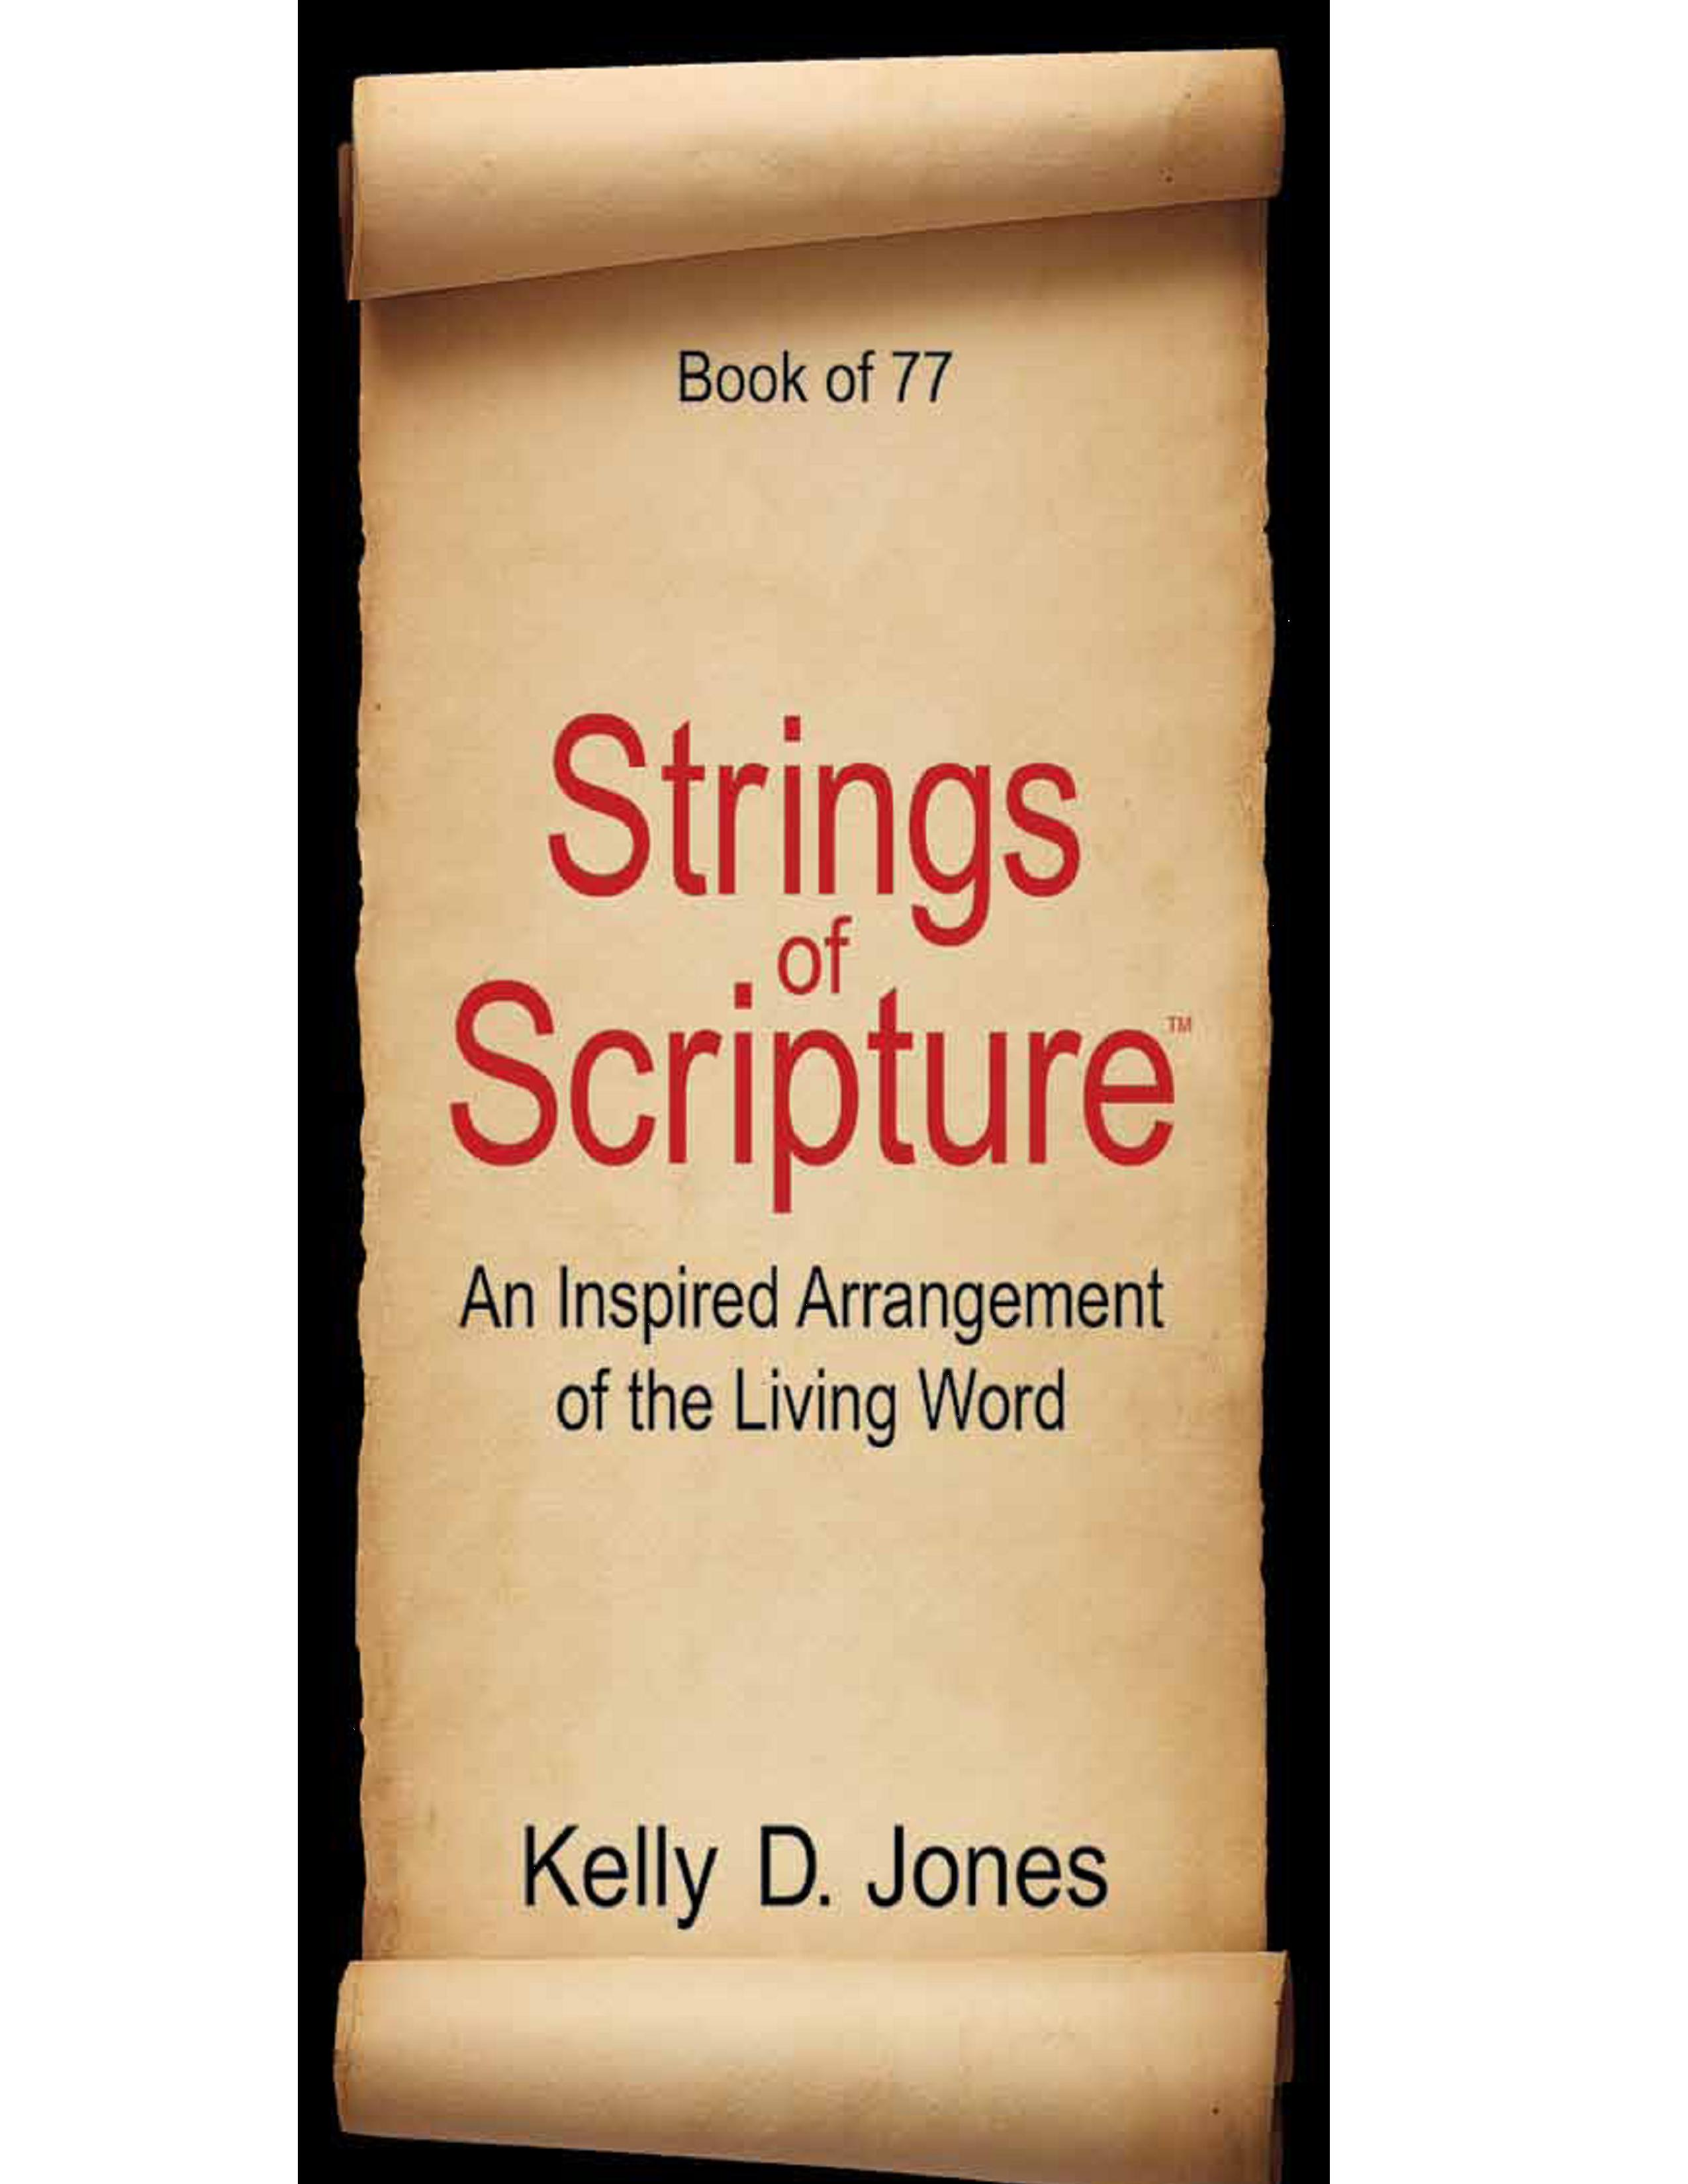 Strings of Scripture, published by Inside Out Publishing, LLC, features 77 poetic strings.  String # 47 - Clean Up Your Planet is particularly appropriate this Earth Day.